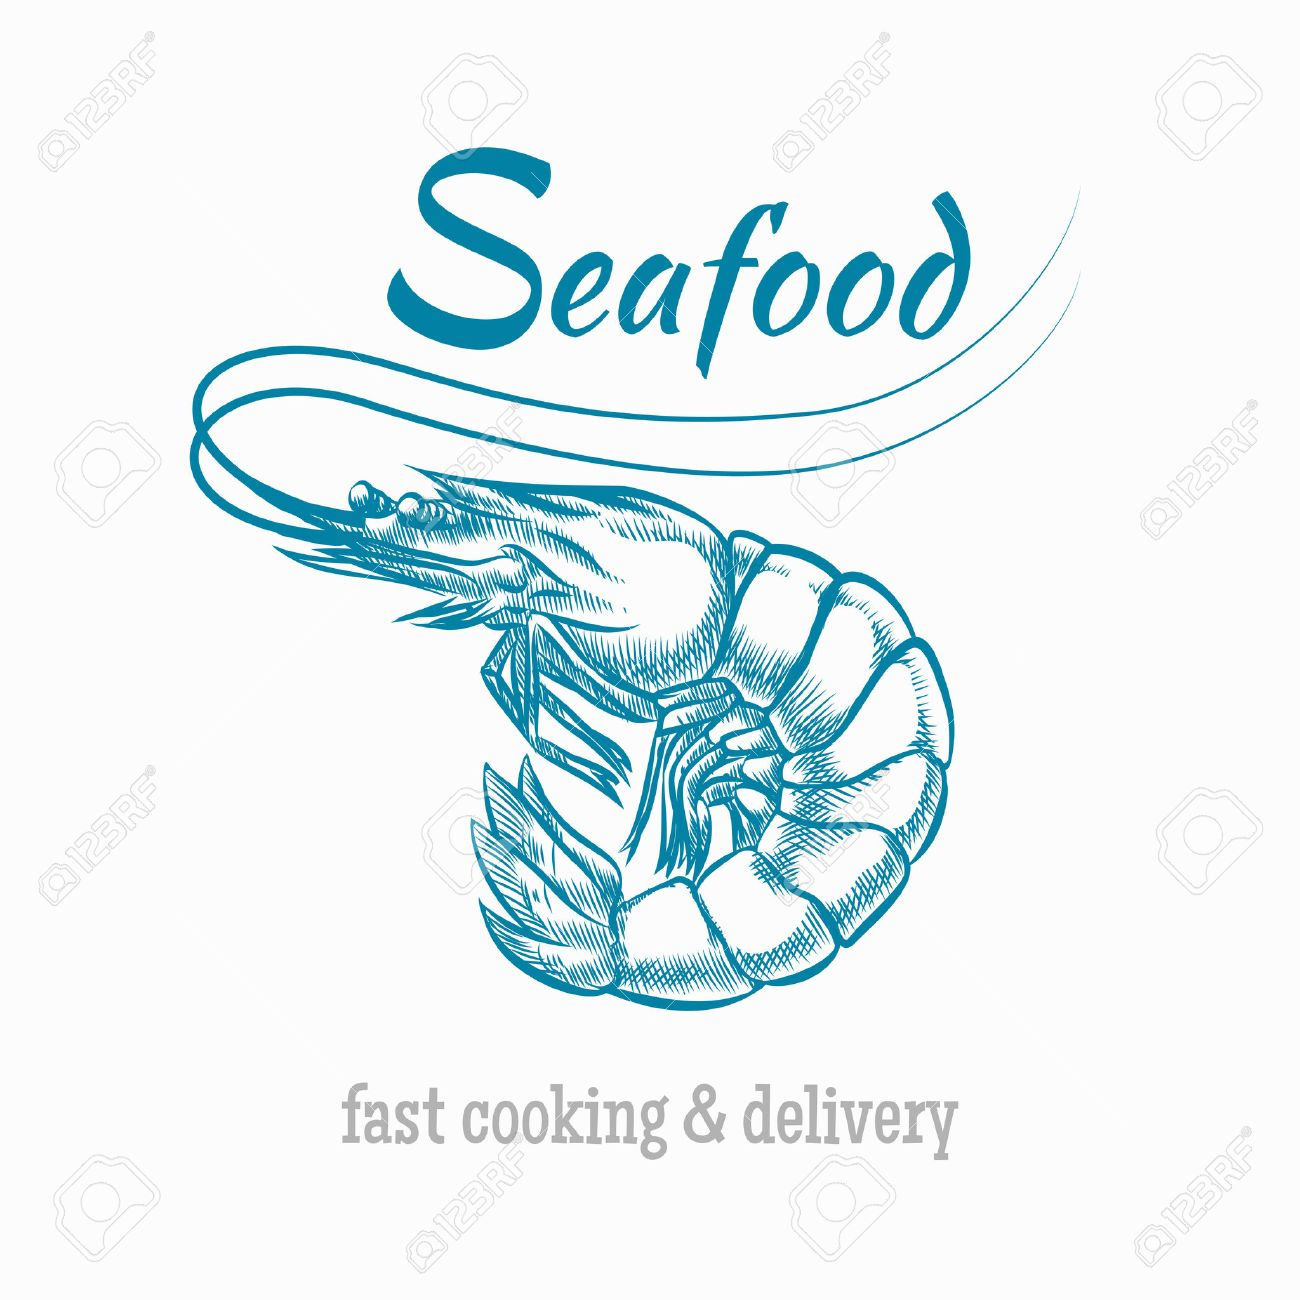 Vector Sketch Shrimp Seafood Sketch Animal Restaurant And Prawn Royalty Free Cliparts Vectors And Stock Illustration Image 43675954